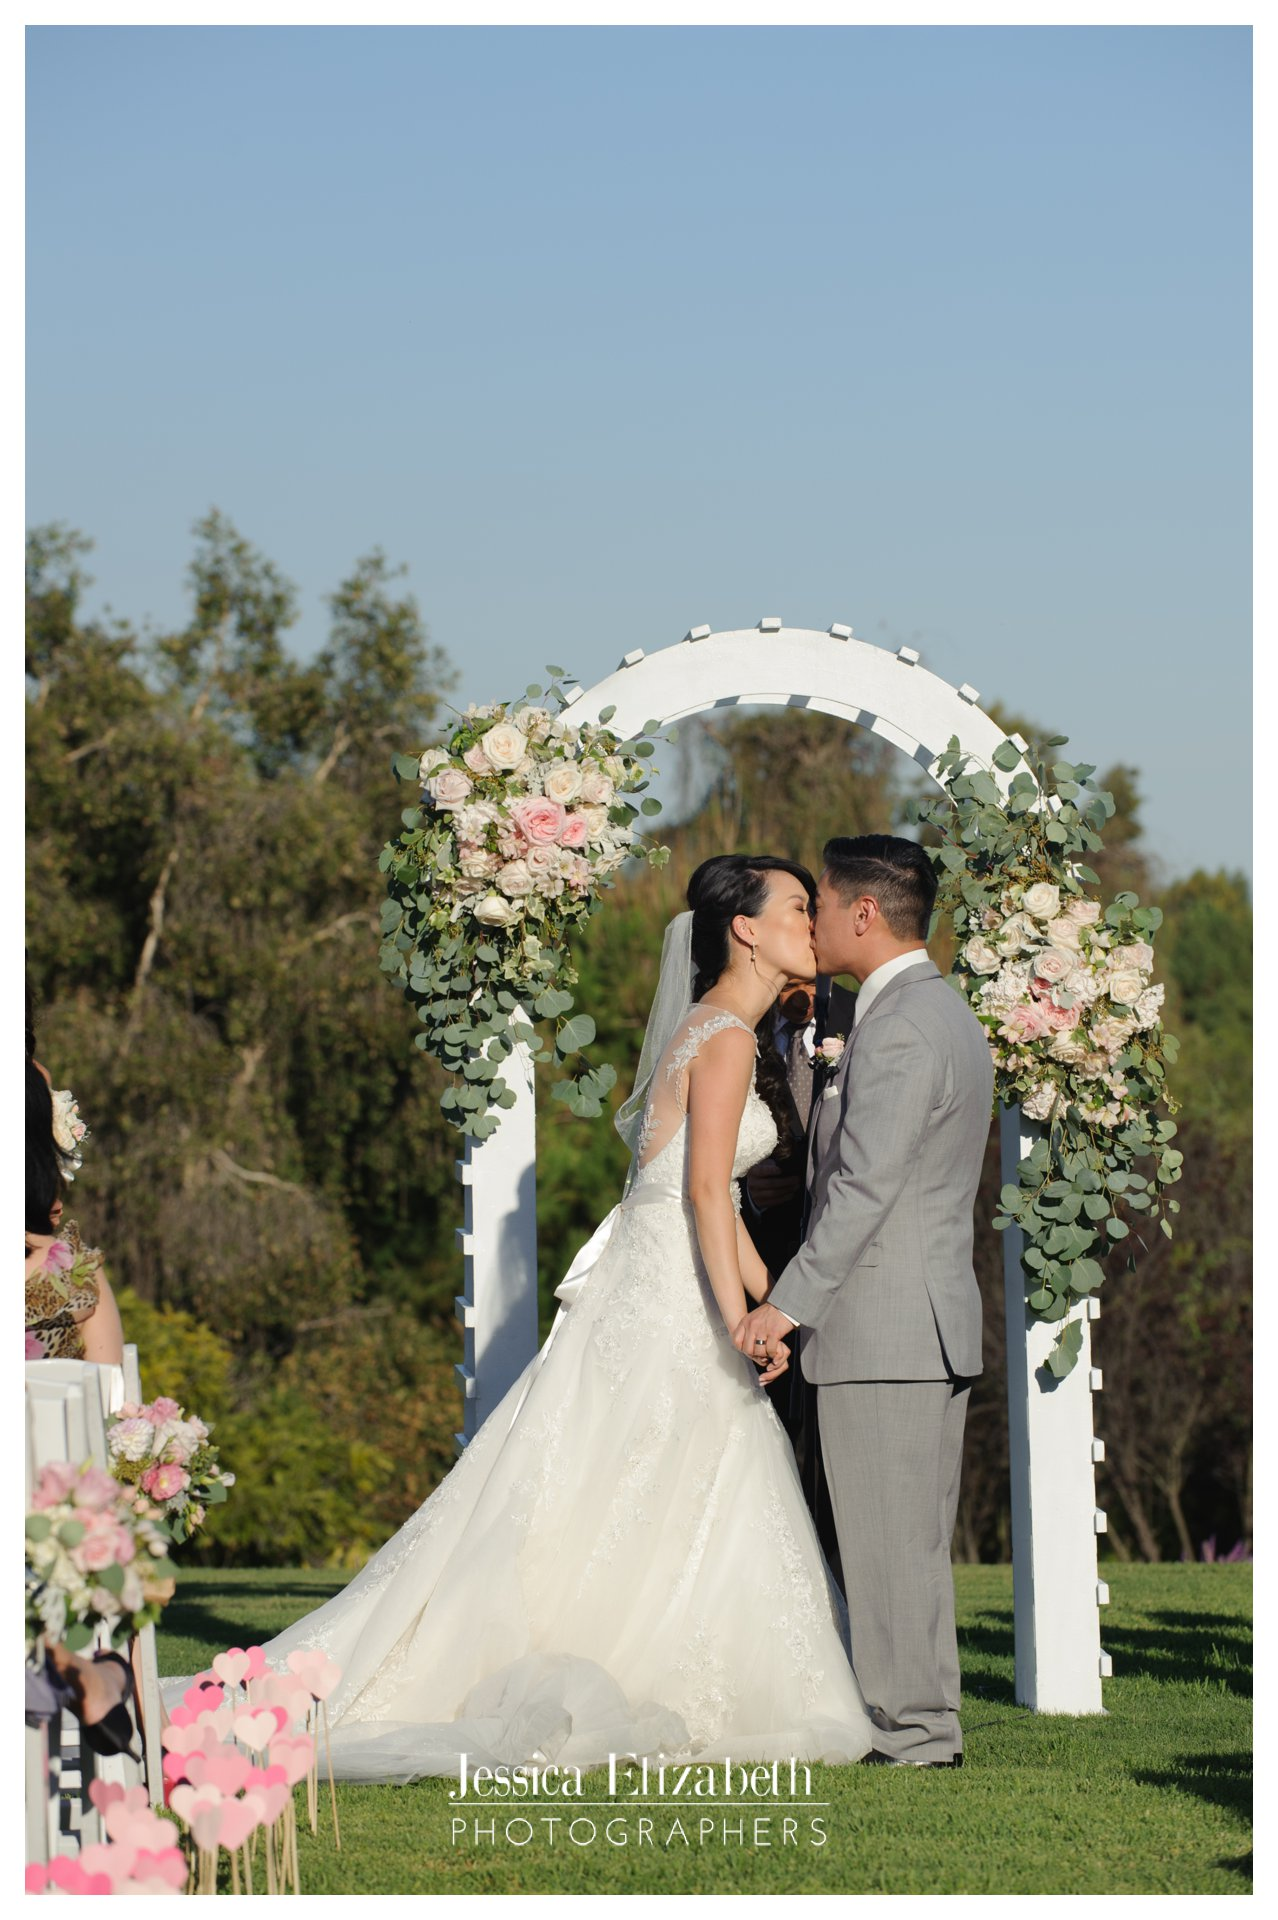 19-South-Coast-Botanic-Garden-Palos-Verdes-Wedding-Photography-by-Jessica-Elizabeth.jpg